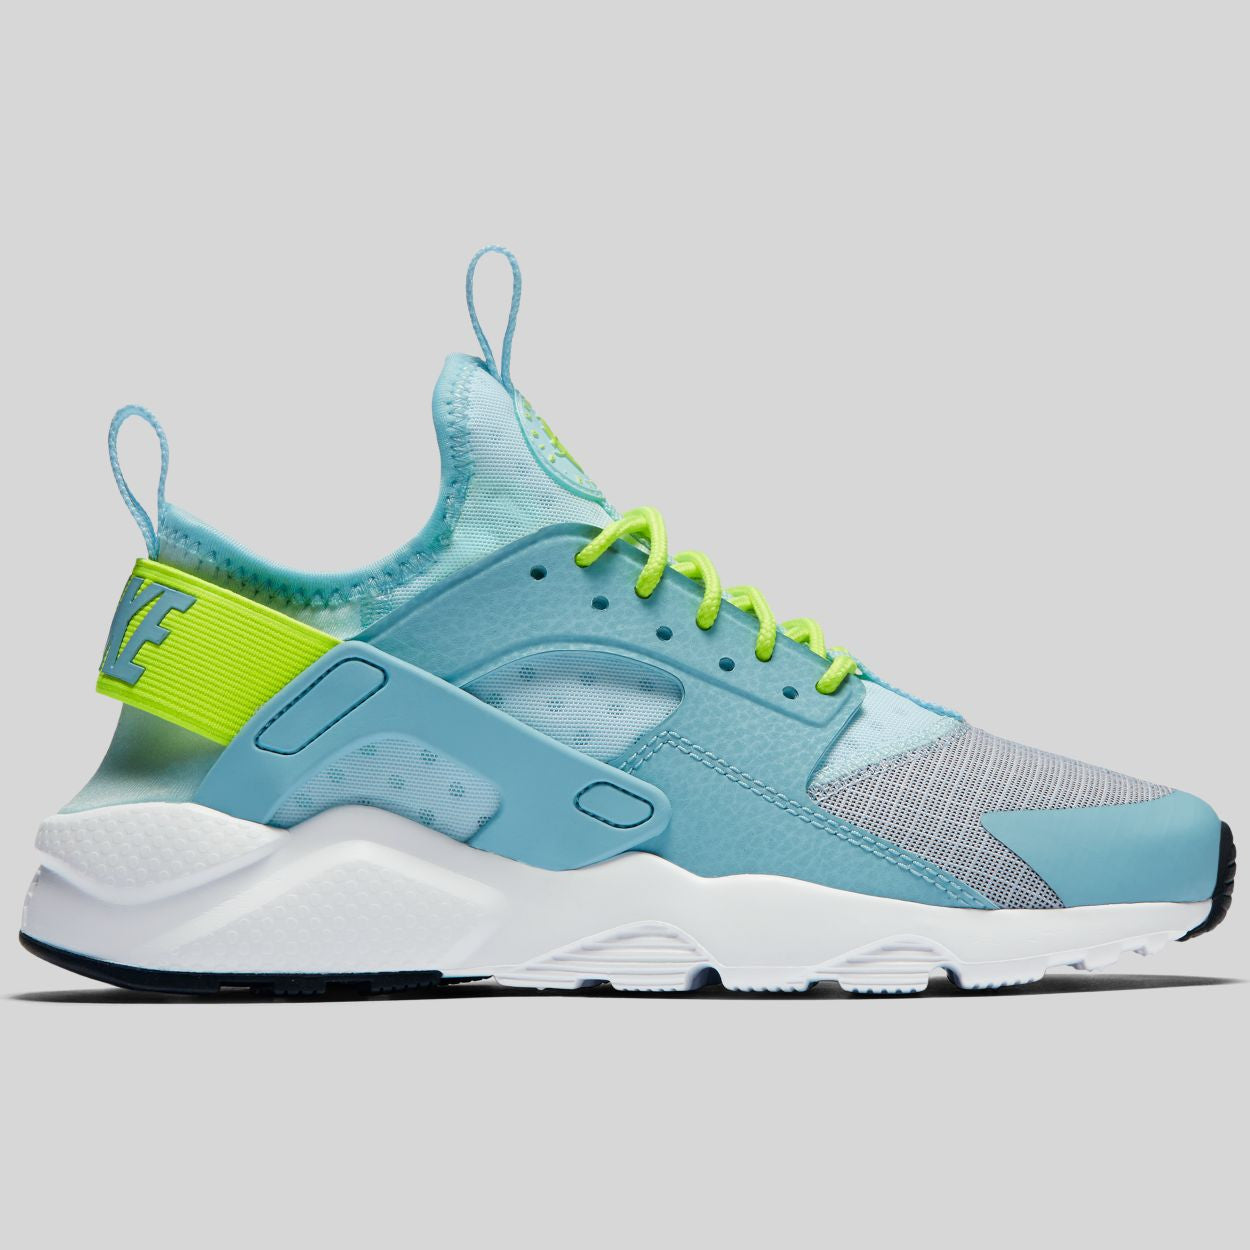 ... SE Mica Blue Legion Green Black Sold Out · Nike Air Huarache Run Ultra  (GS) Glacier Blue Volt Mica Blue White (847568 b14c6382ef